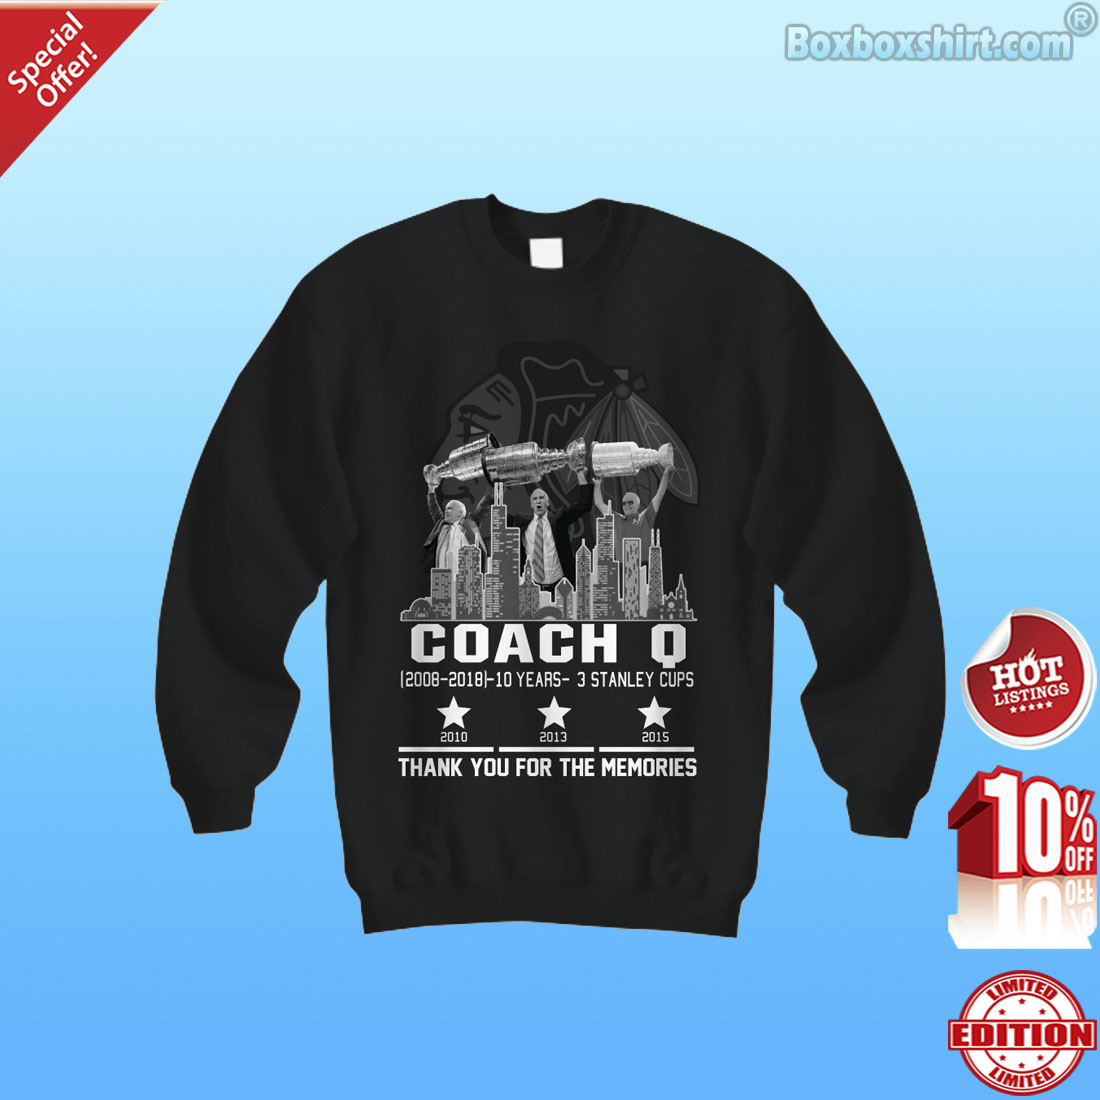 Chiago Blackhawks  Joel Quennevilcoach Q thank you for the memories shirt 2